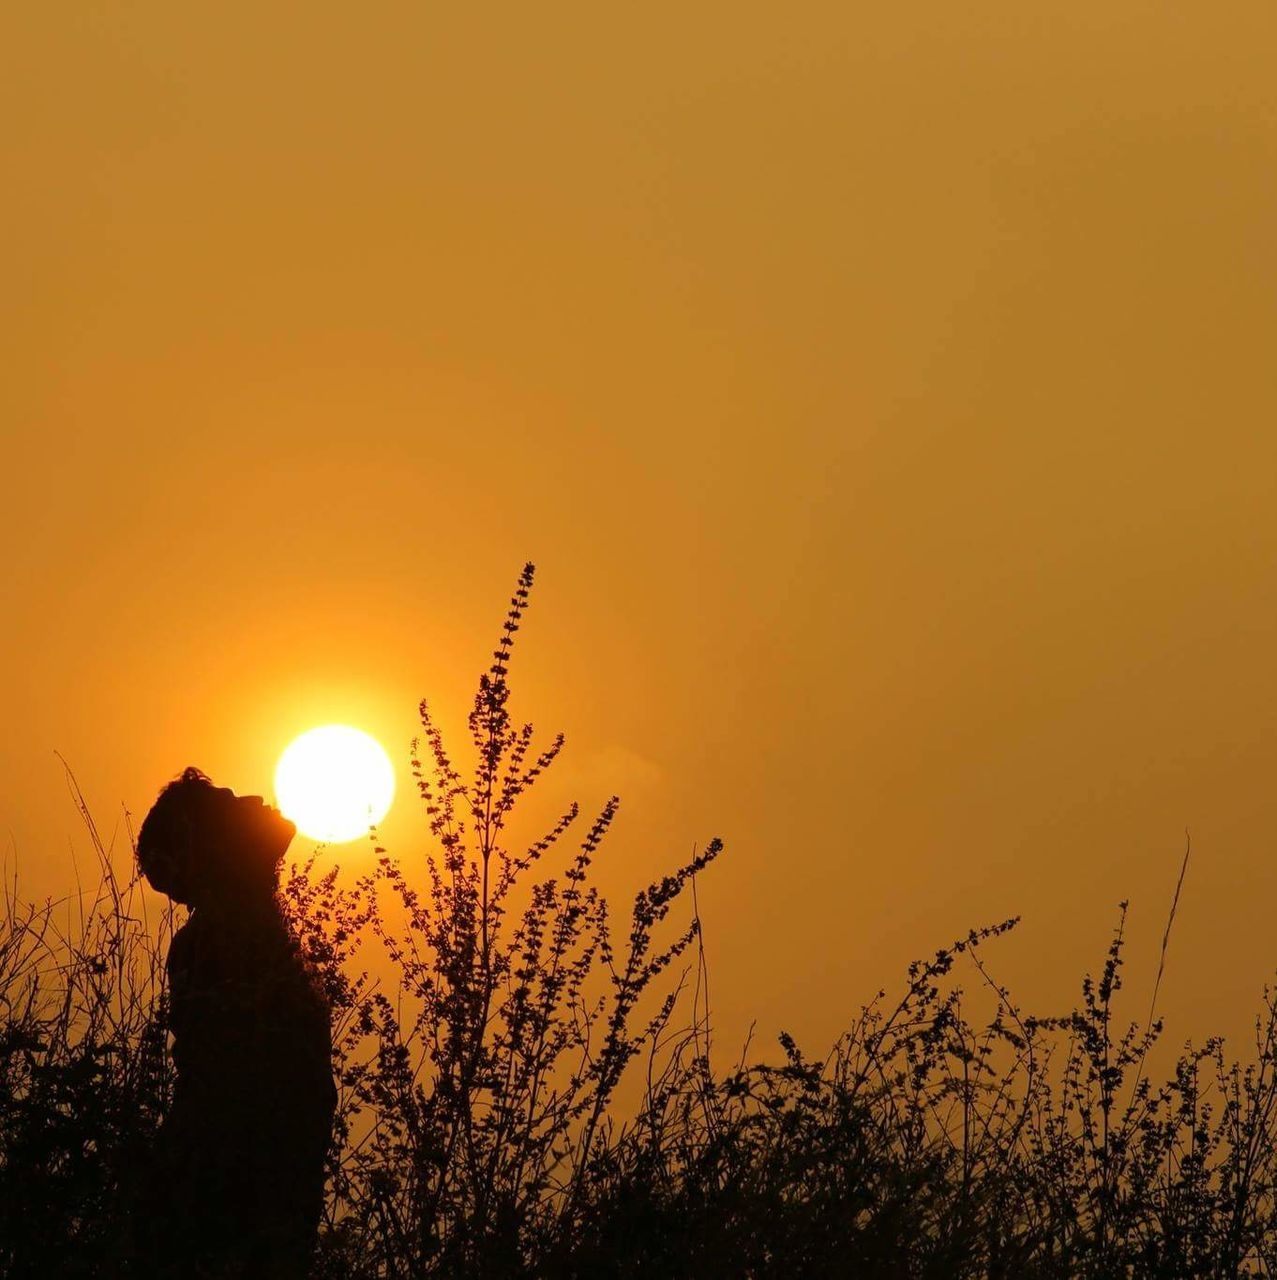 Silhouette Of Person Standing In Field At Sunset